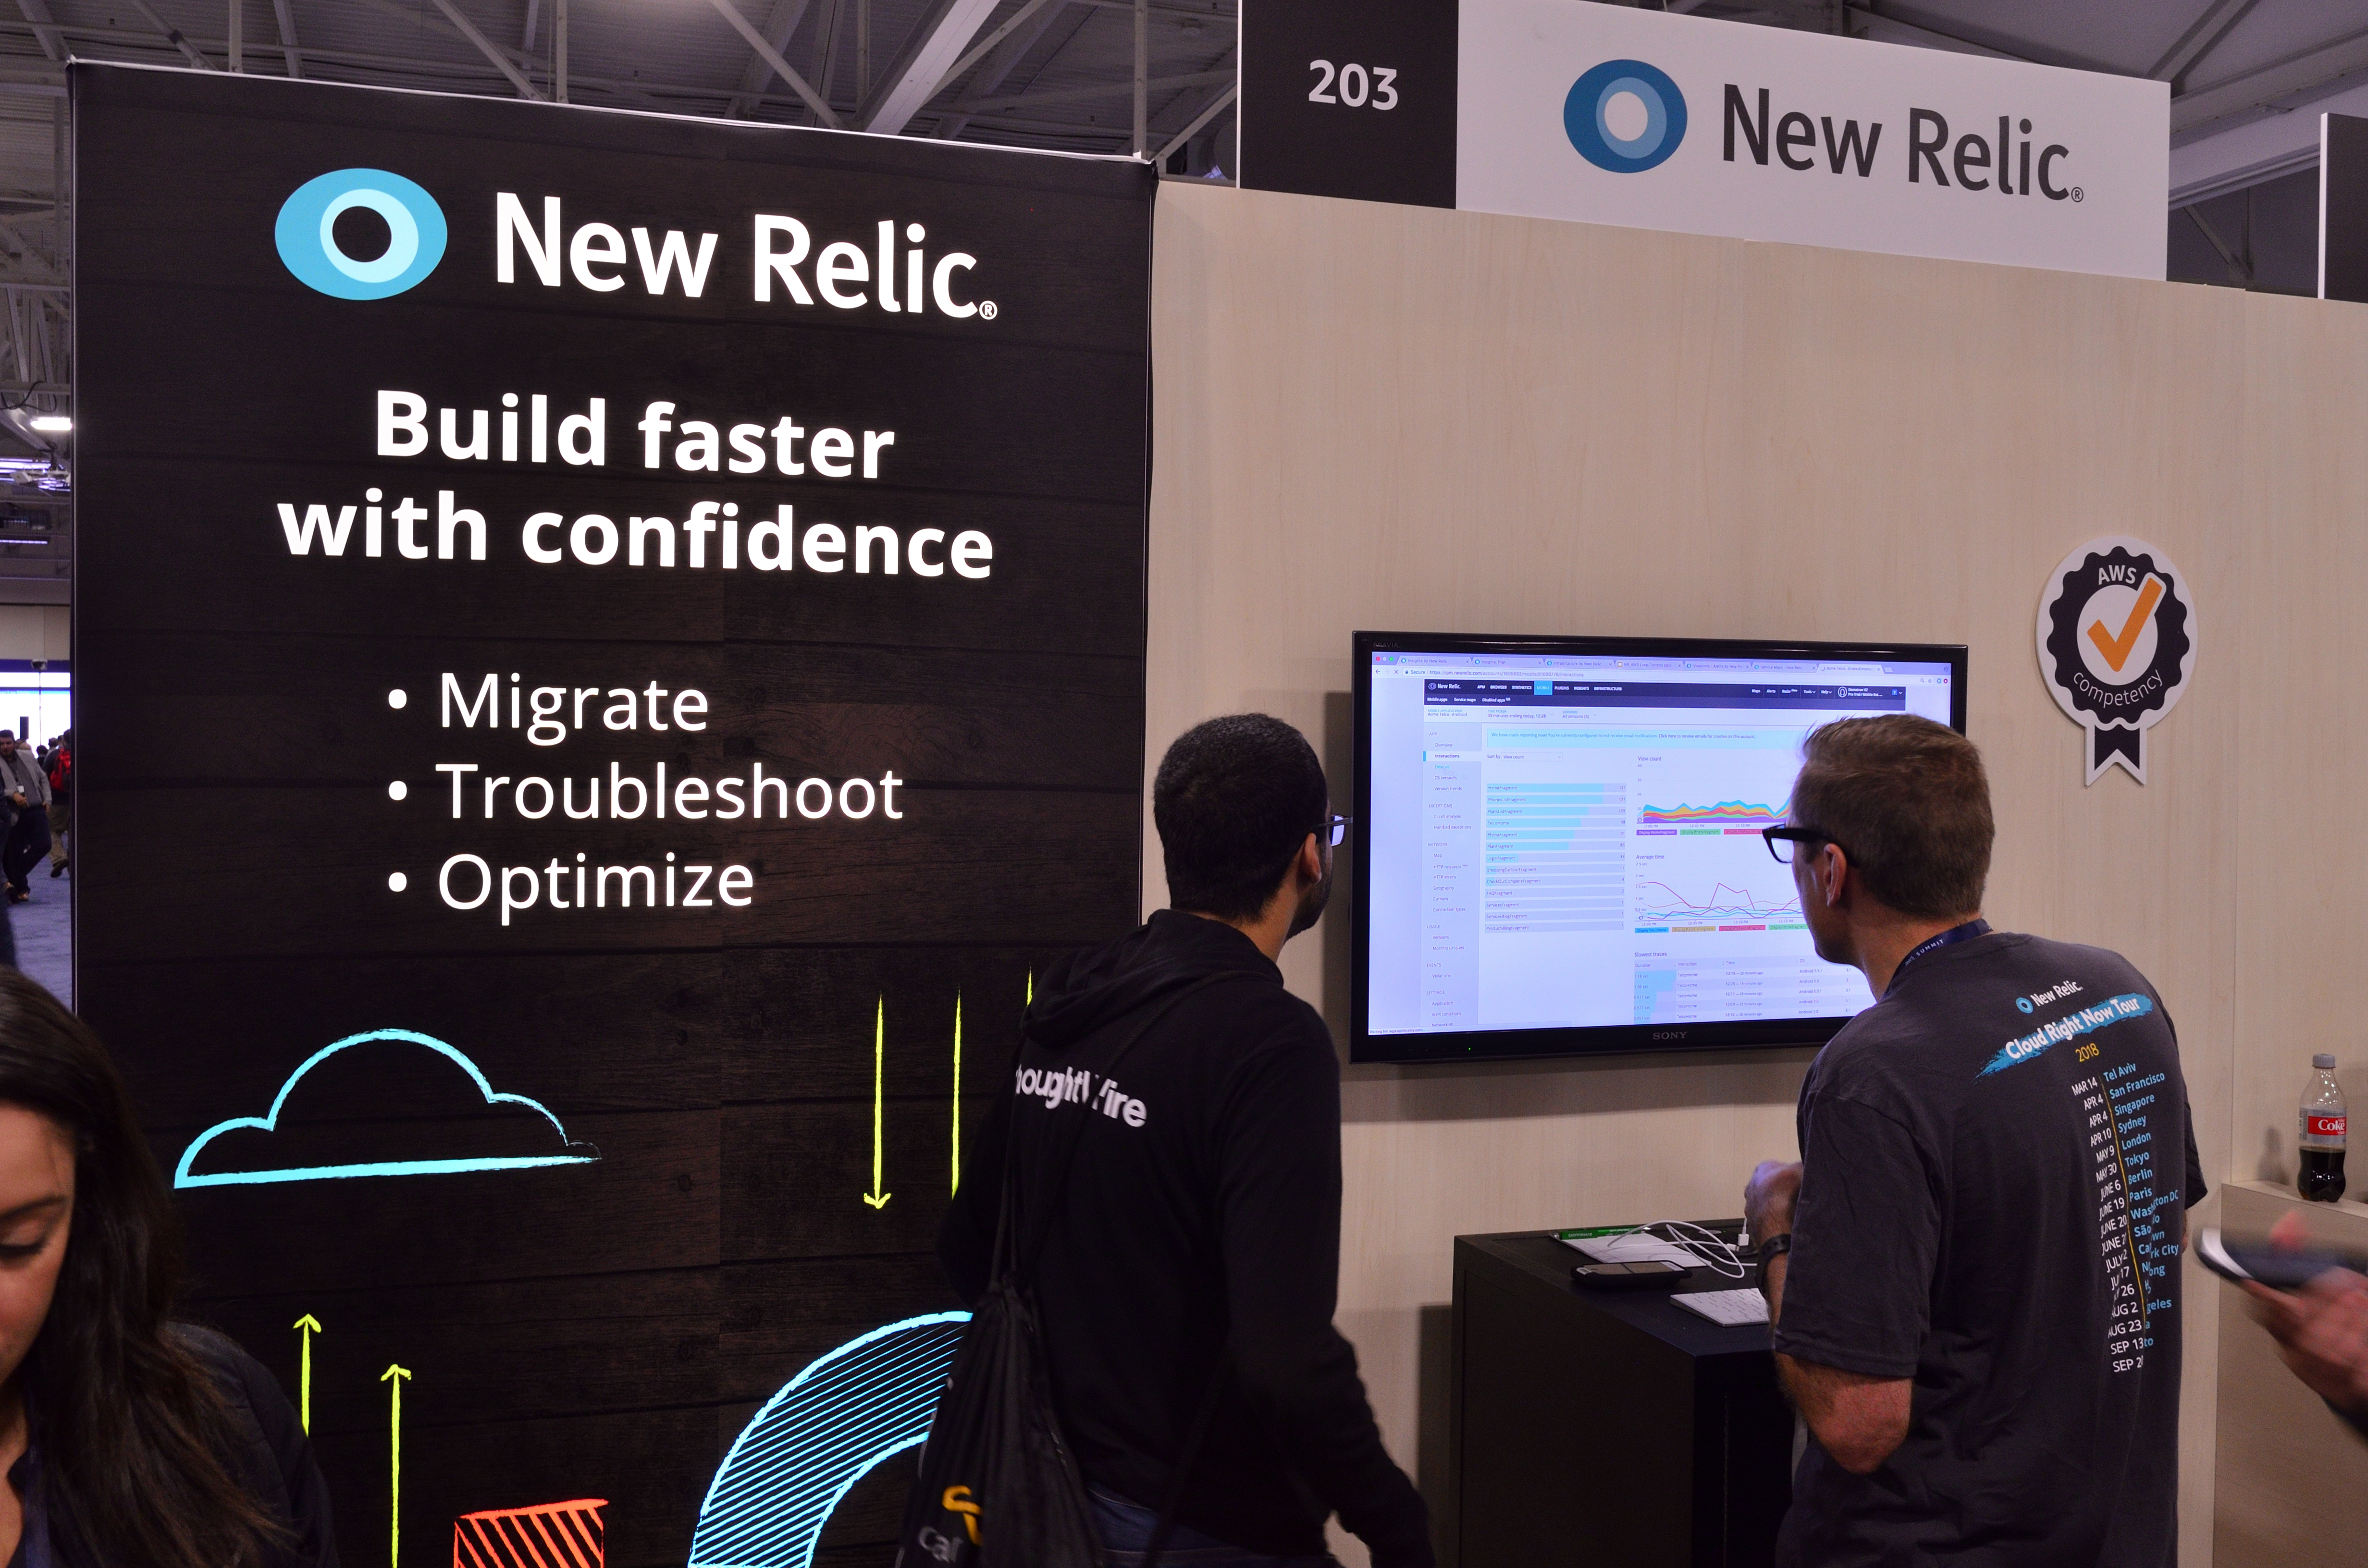 New Relic - Wikipedia